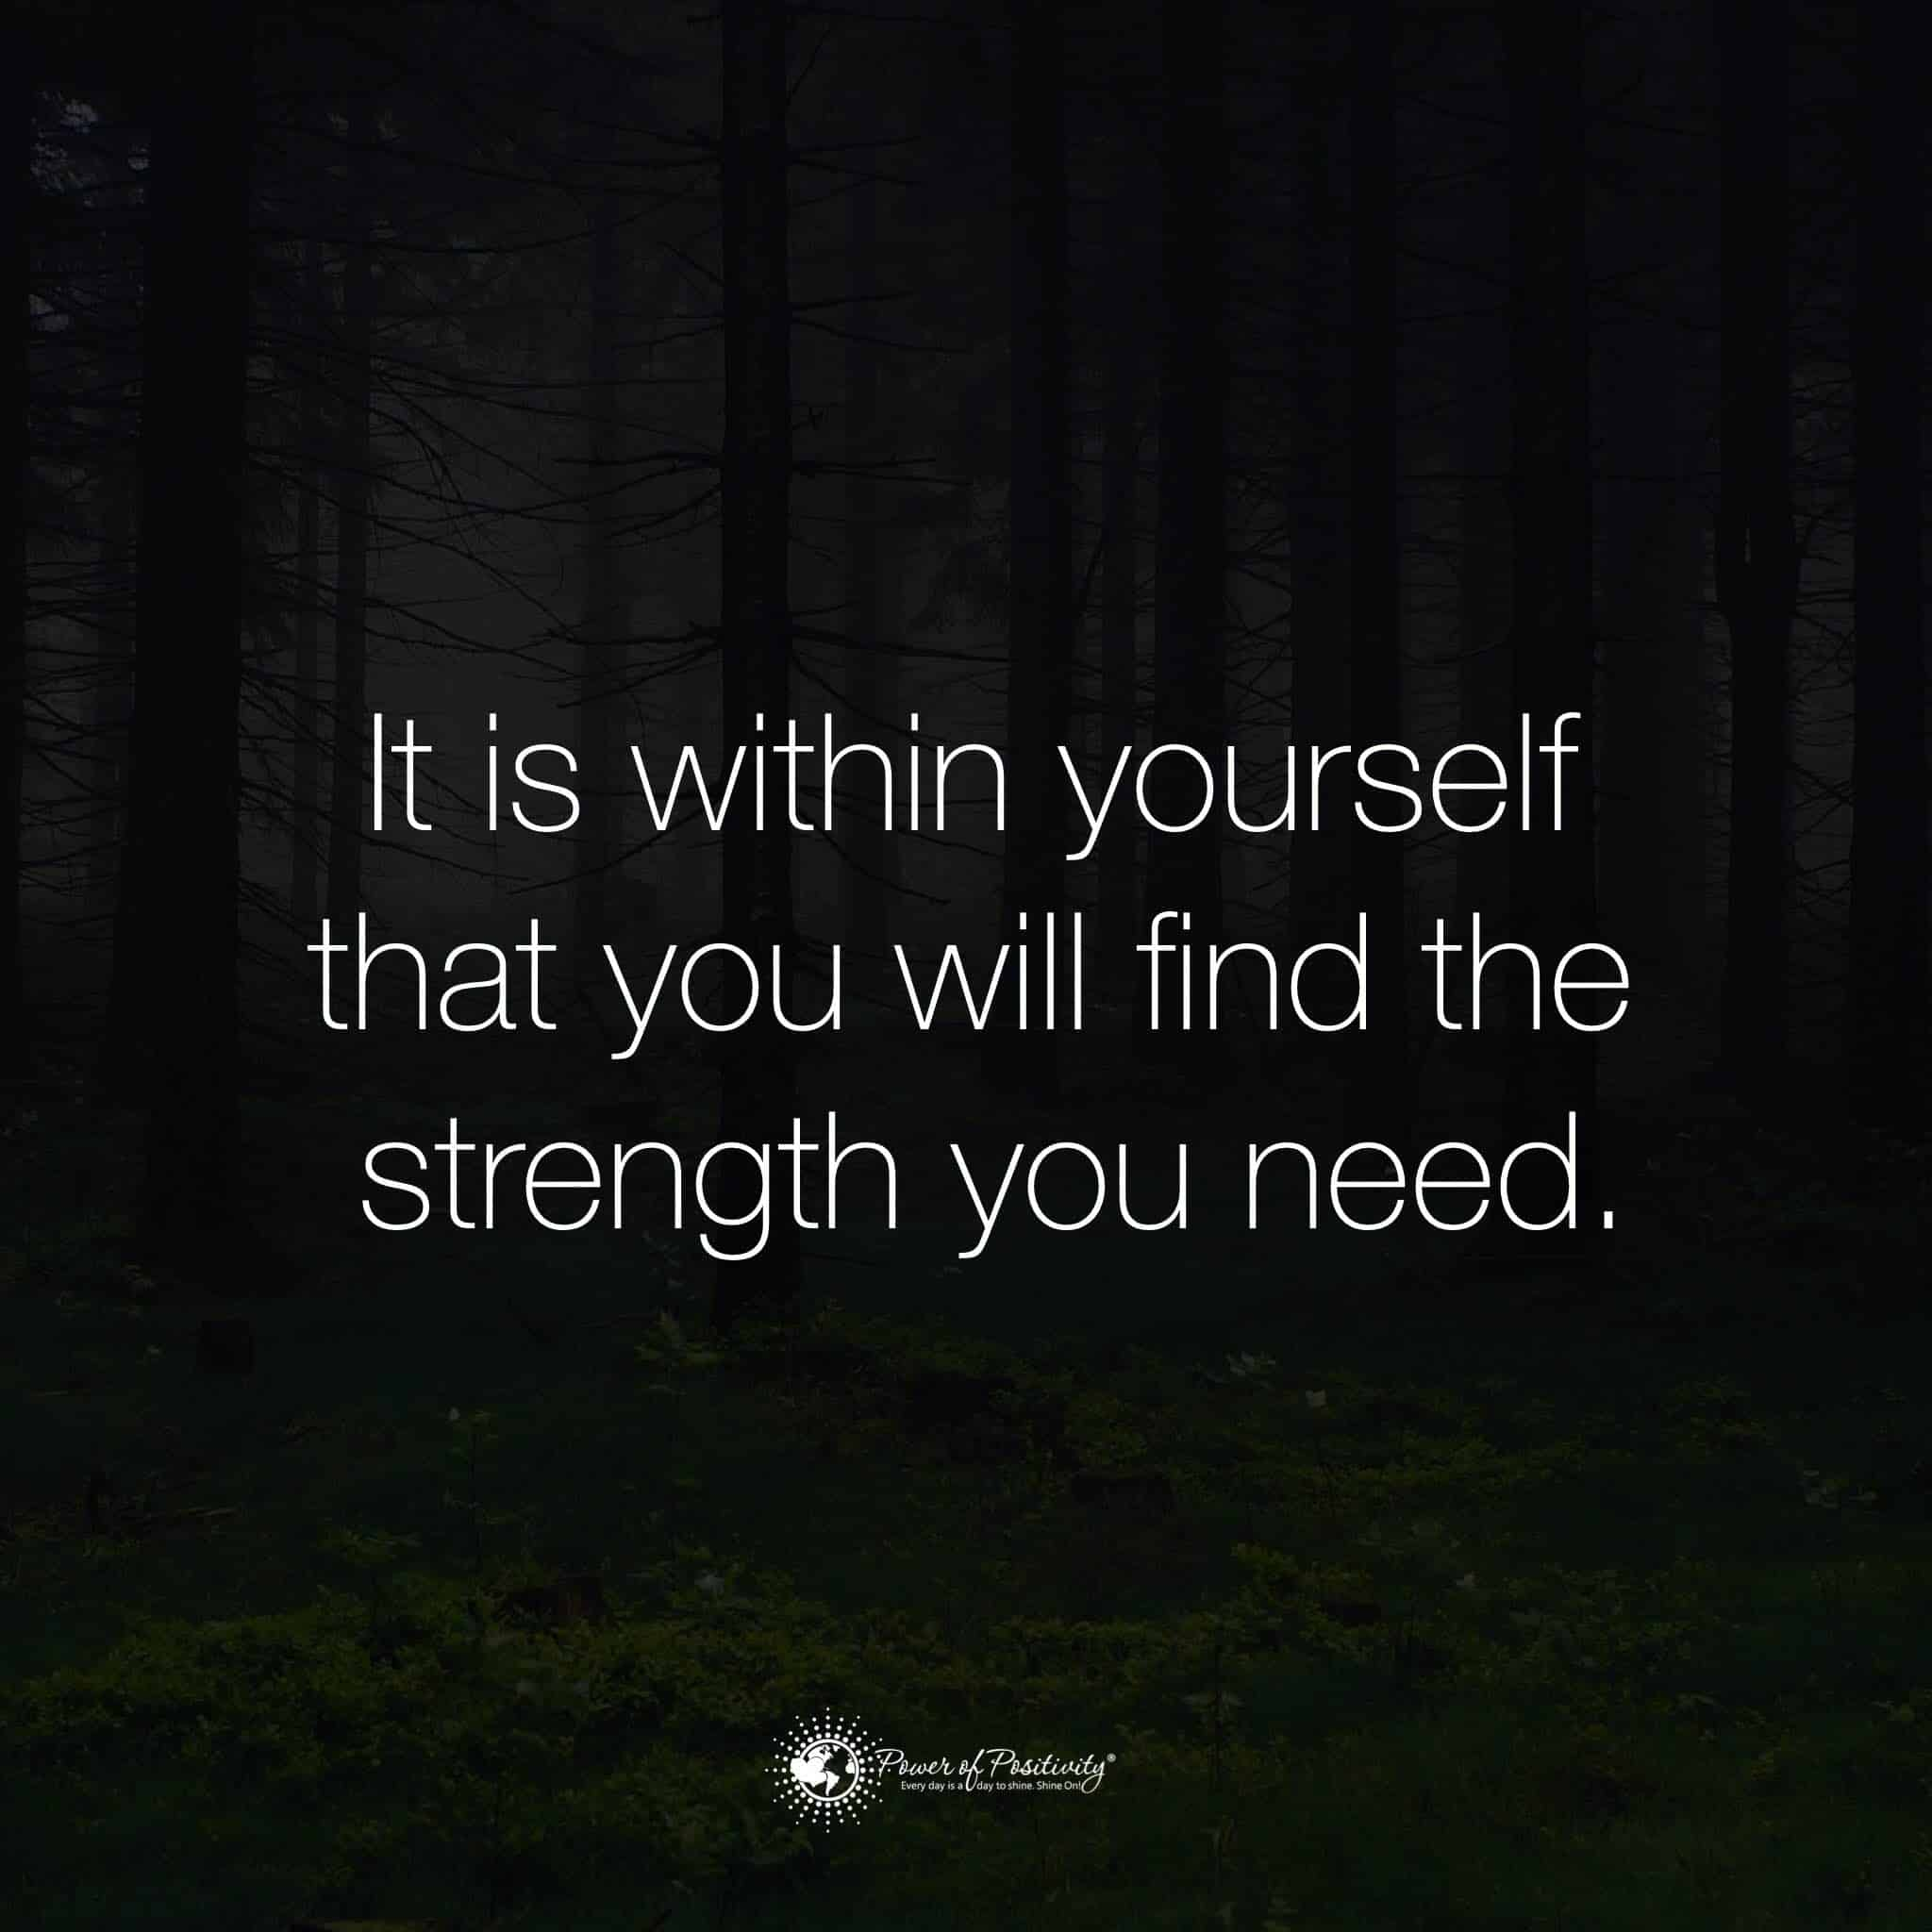 Quotes Strength: 10 Ways To Build Inner Strength